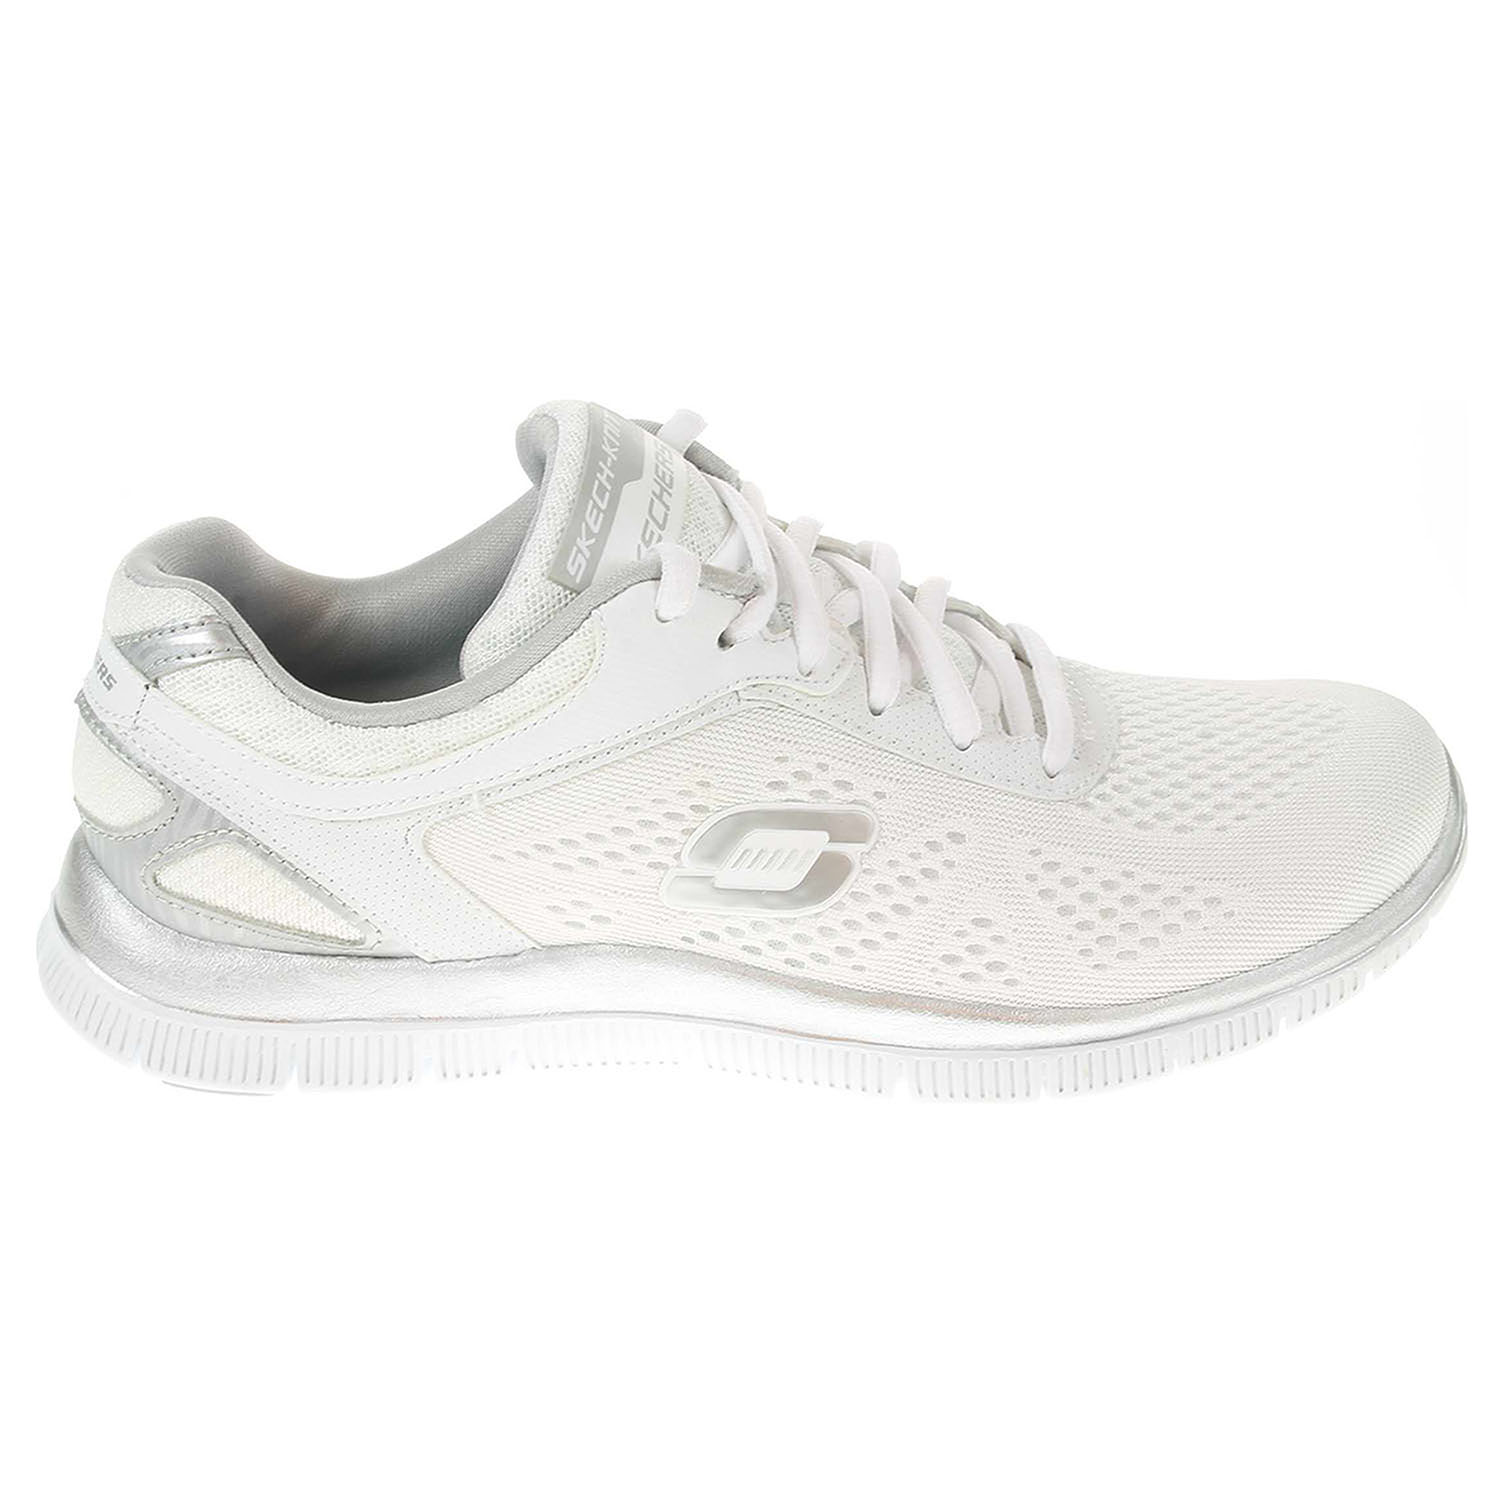 Skechers Love Your Style white-silver